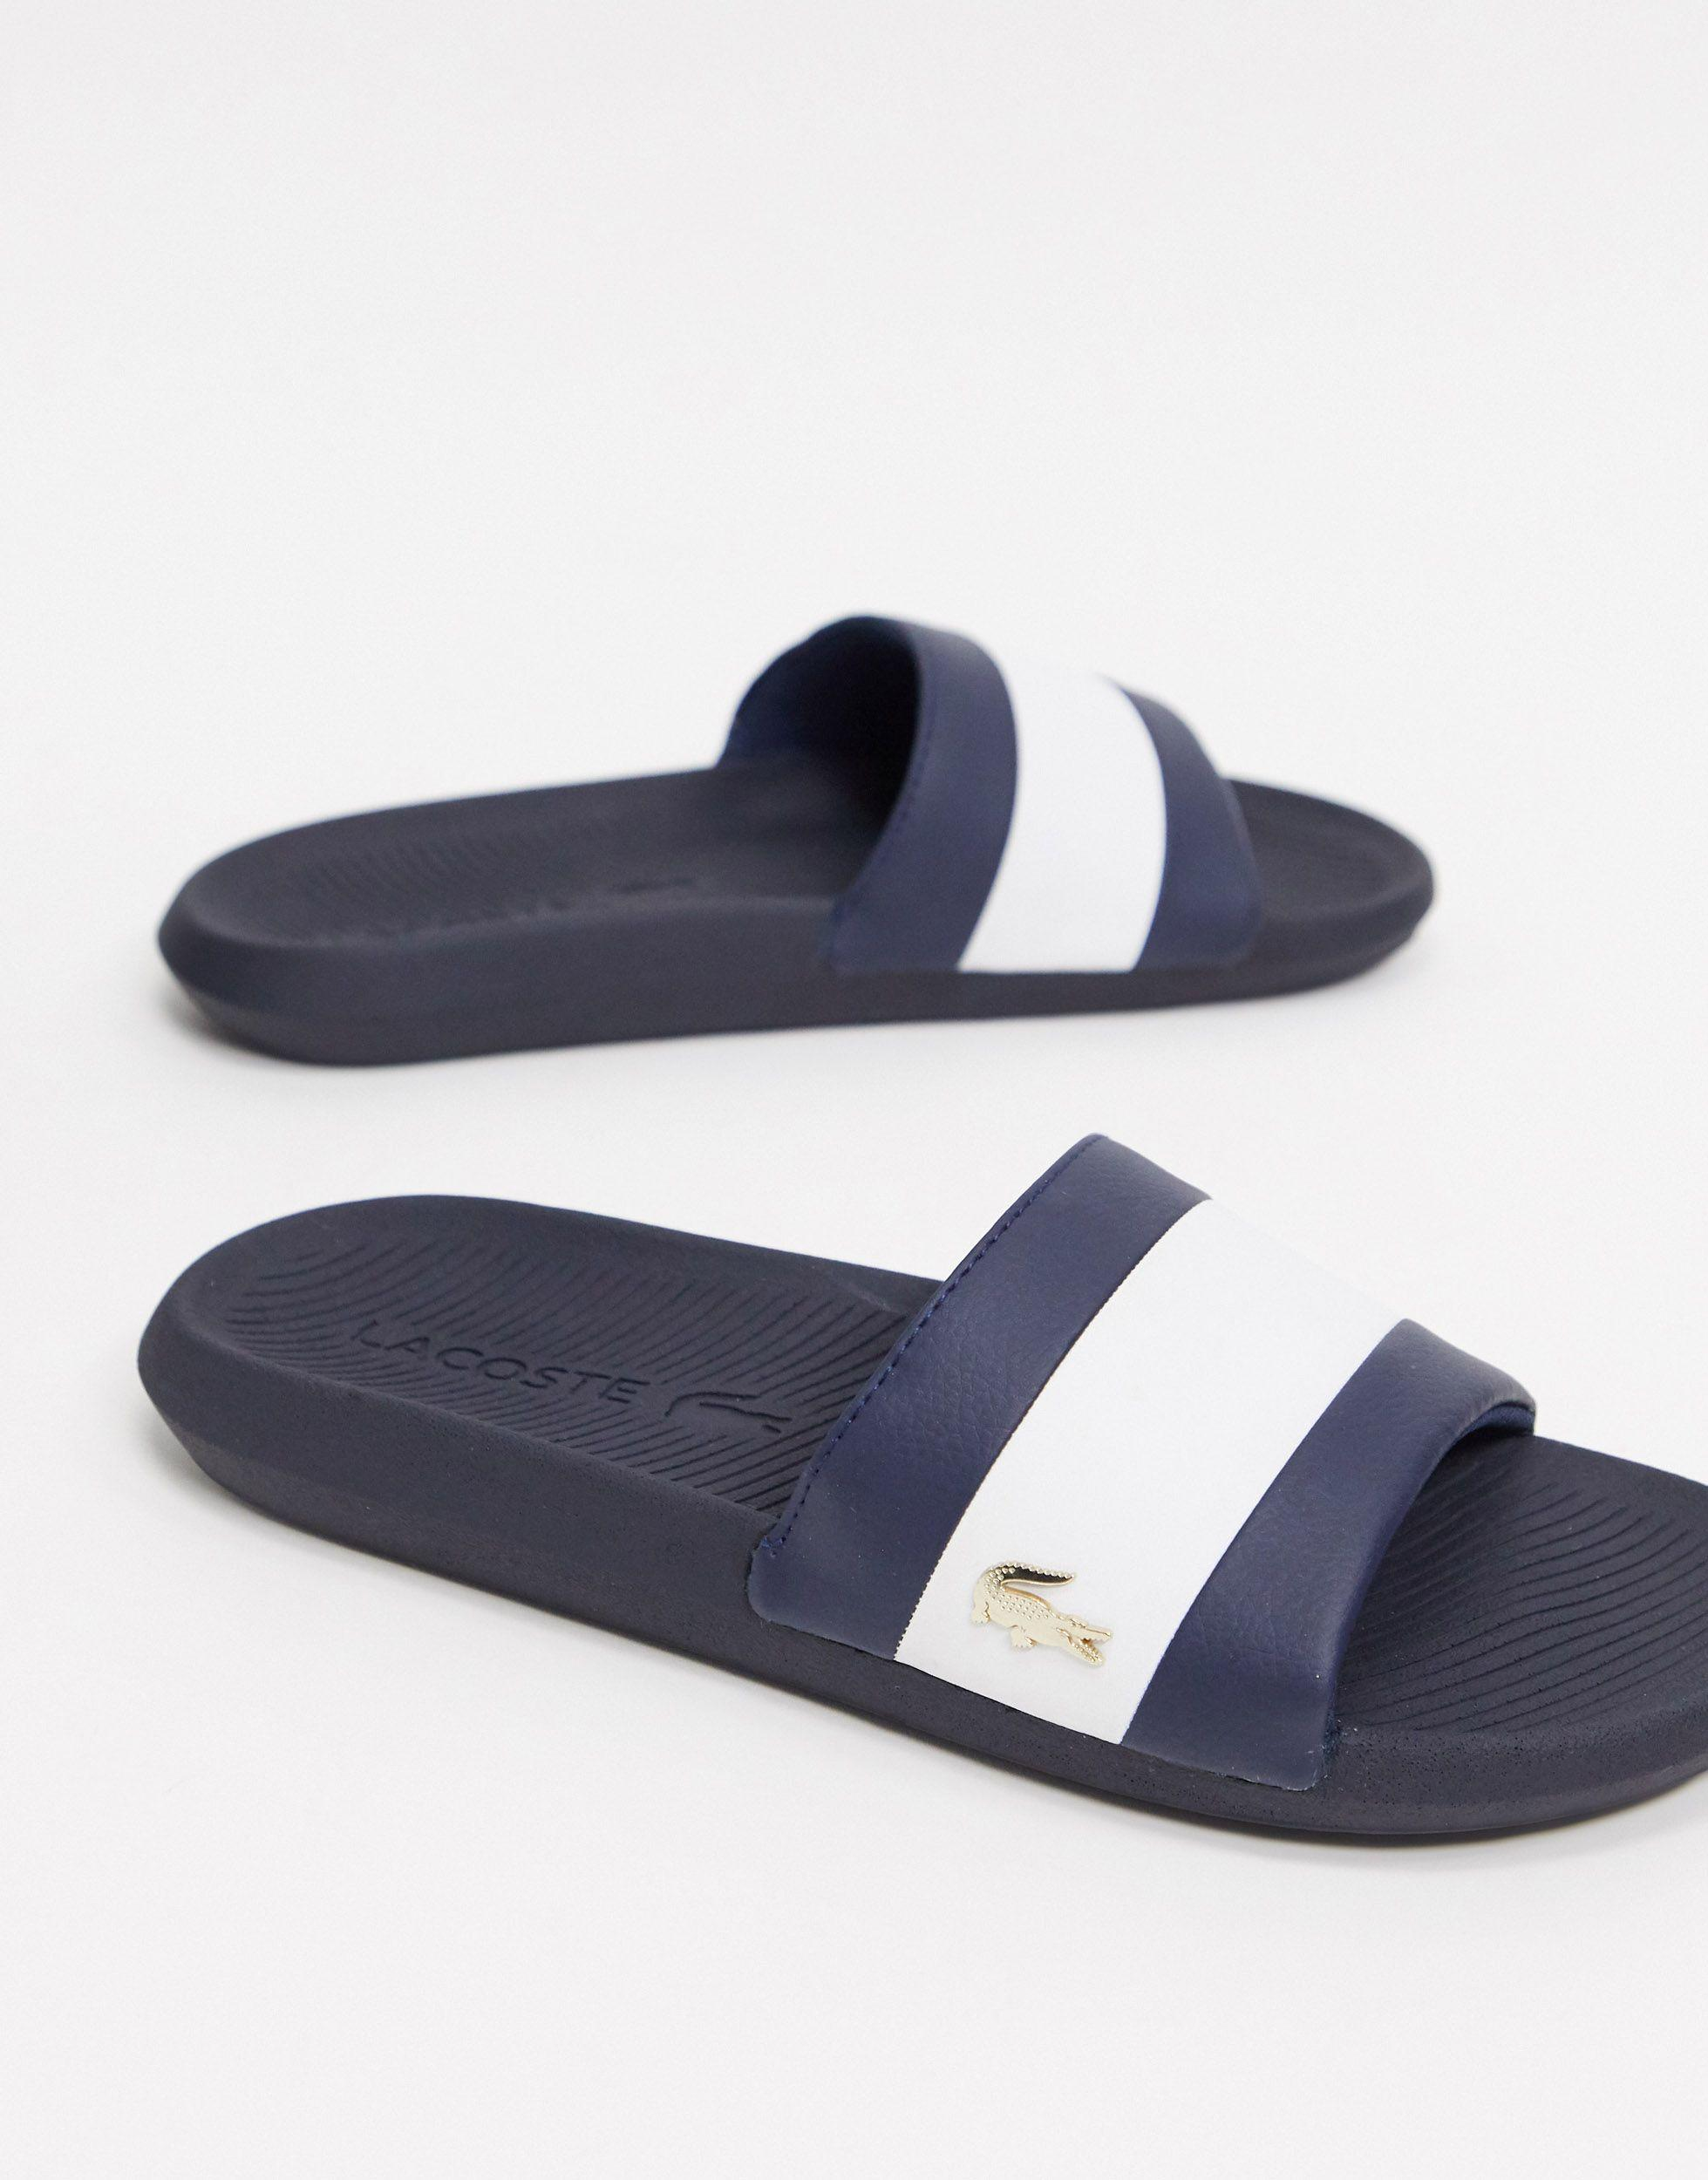 Lacoste Croco Sliders Navy With Gold